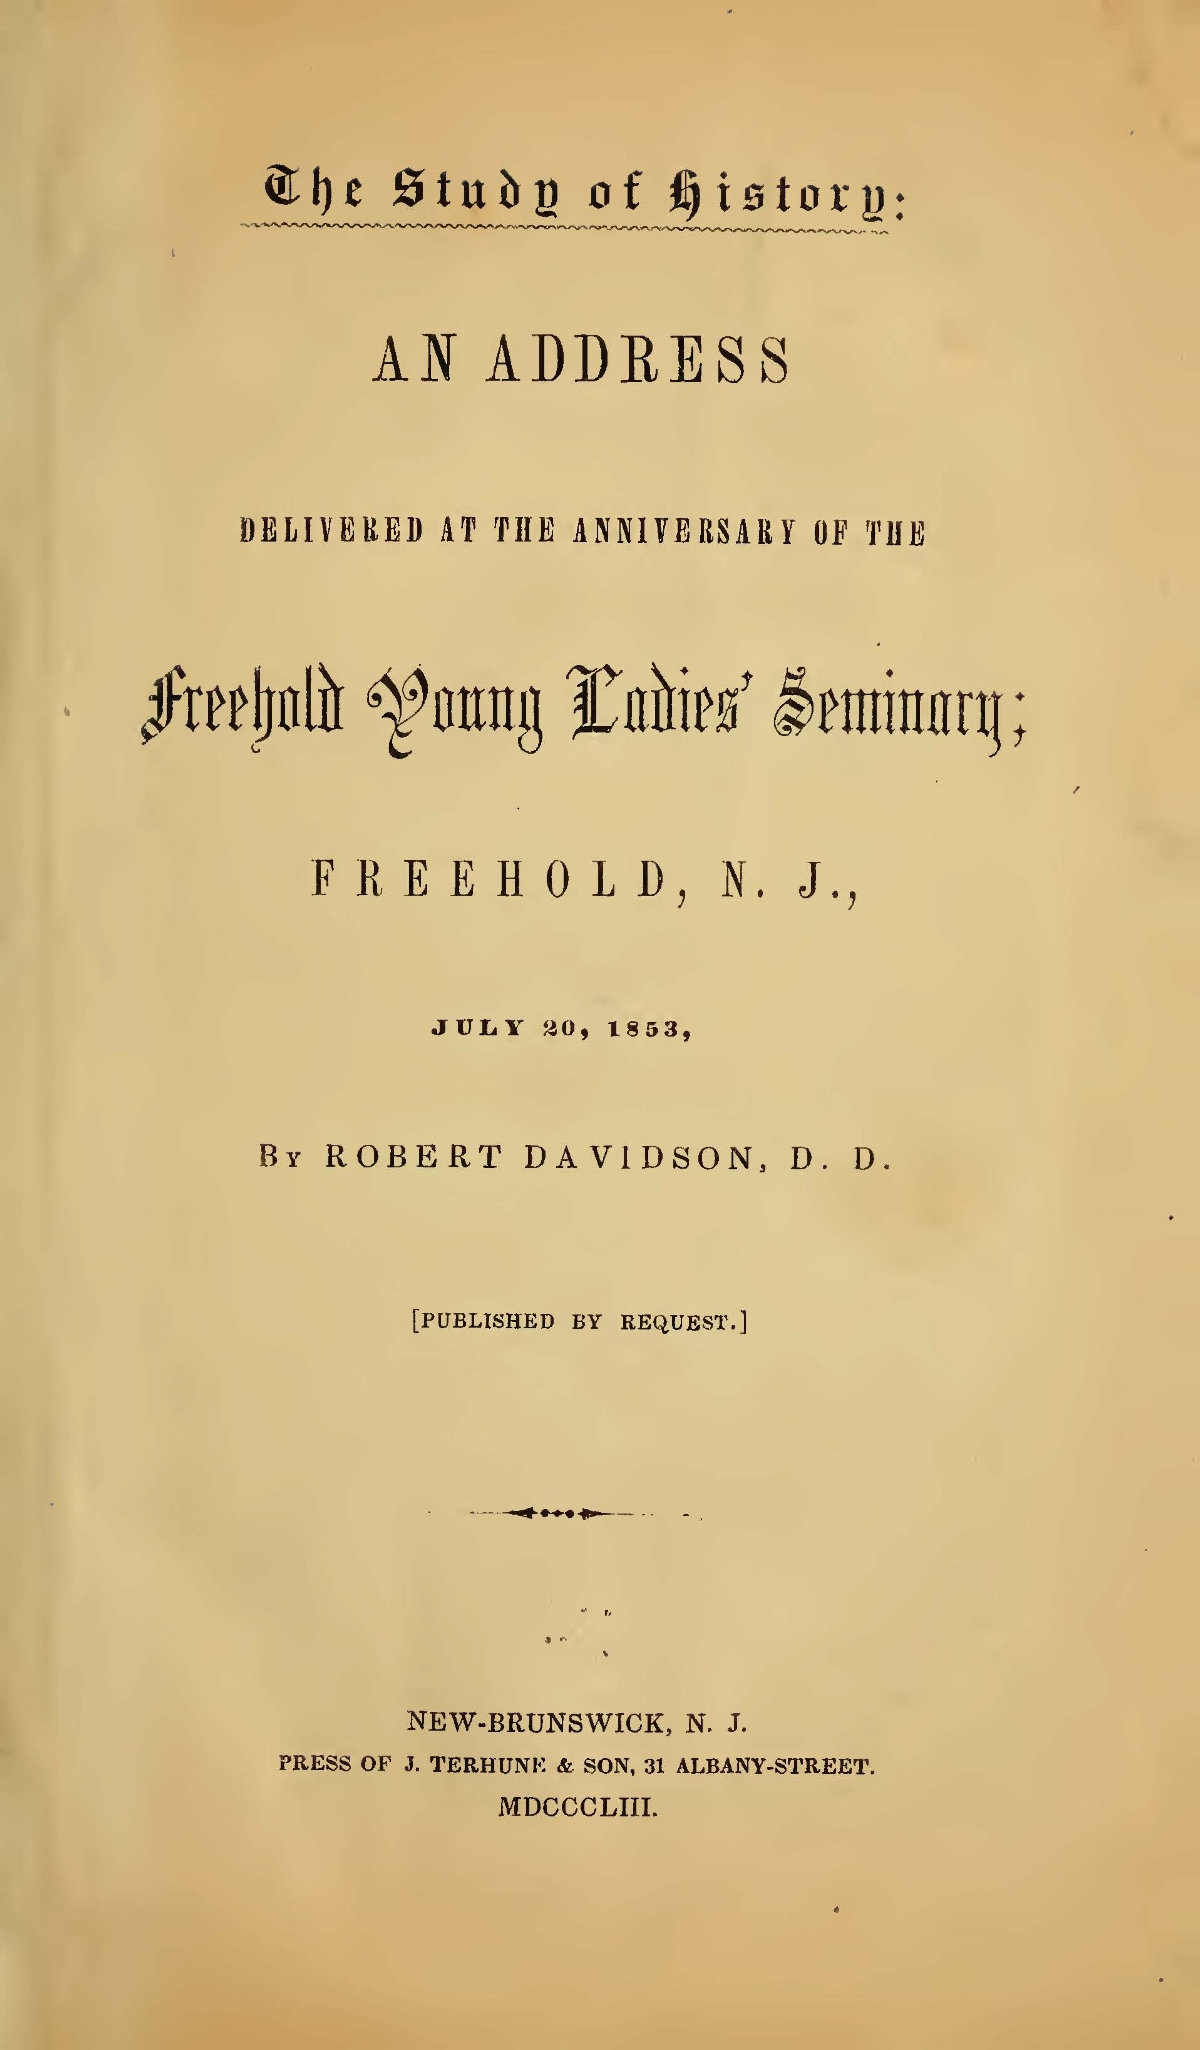 Davidson, Robert, The Study of History Title Page.jpg